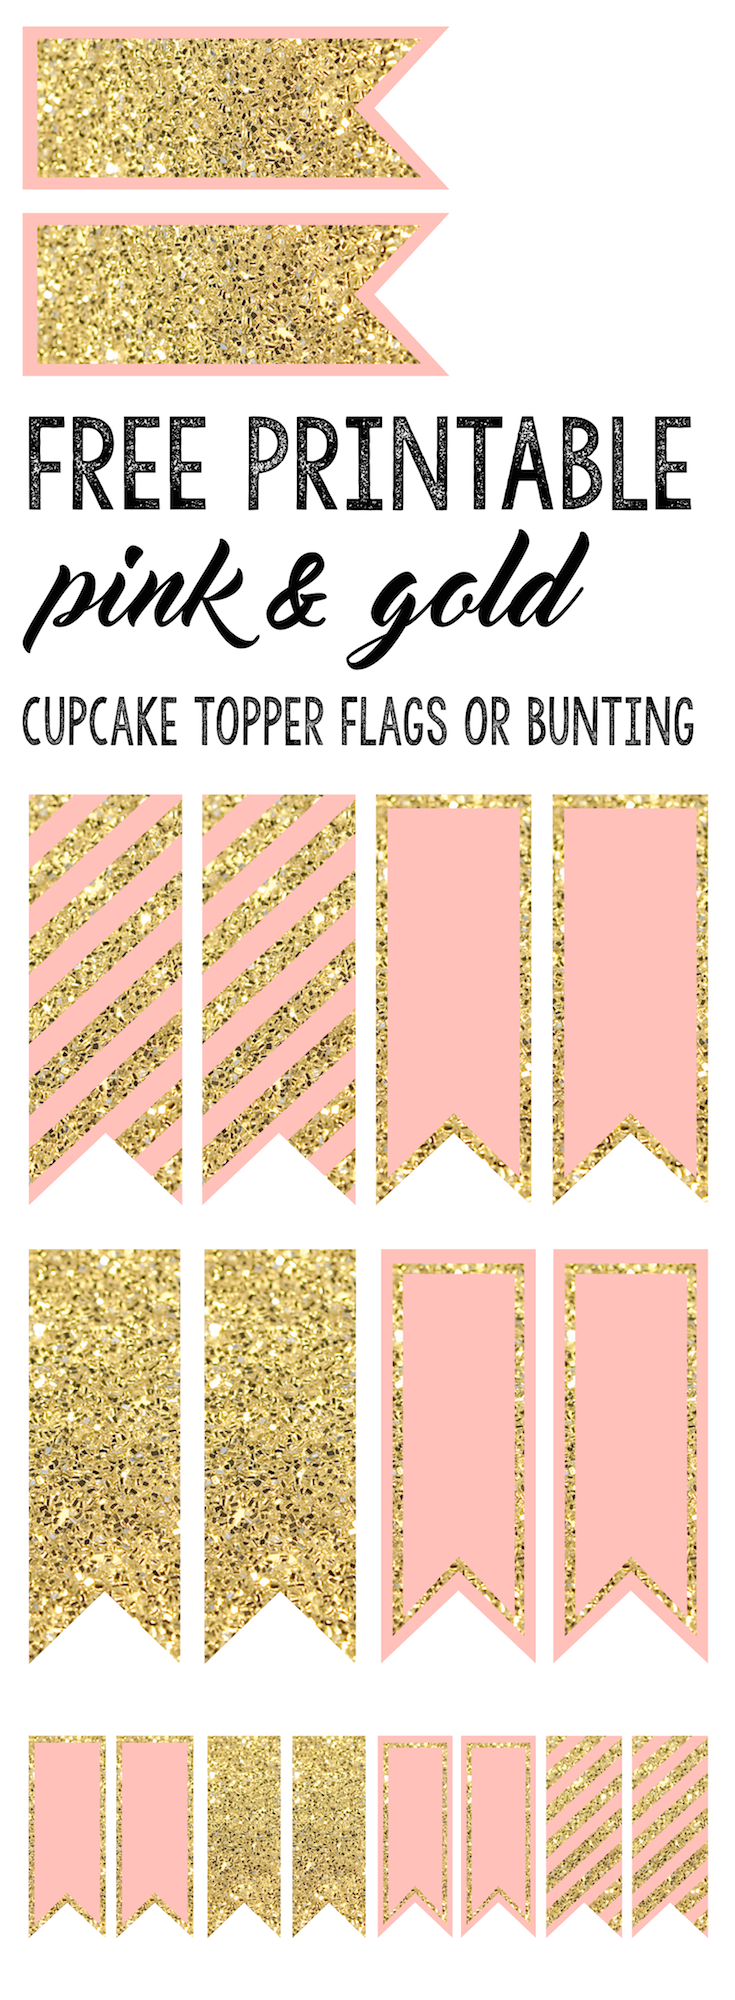 Pink-gold-cupcake-topper-long